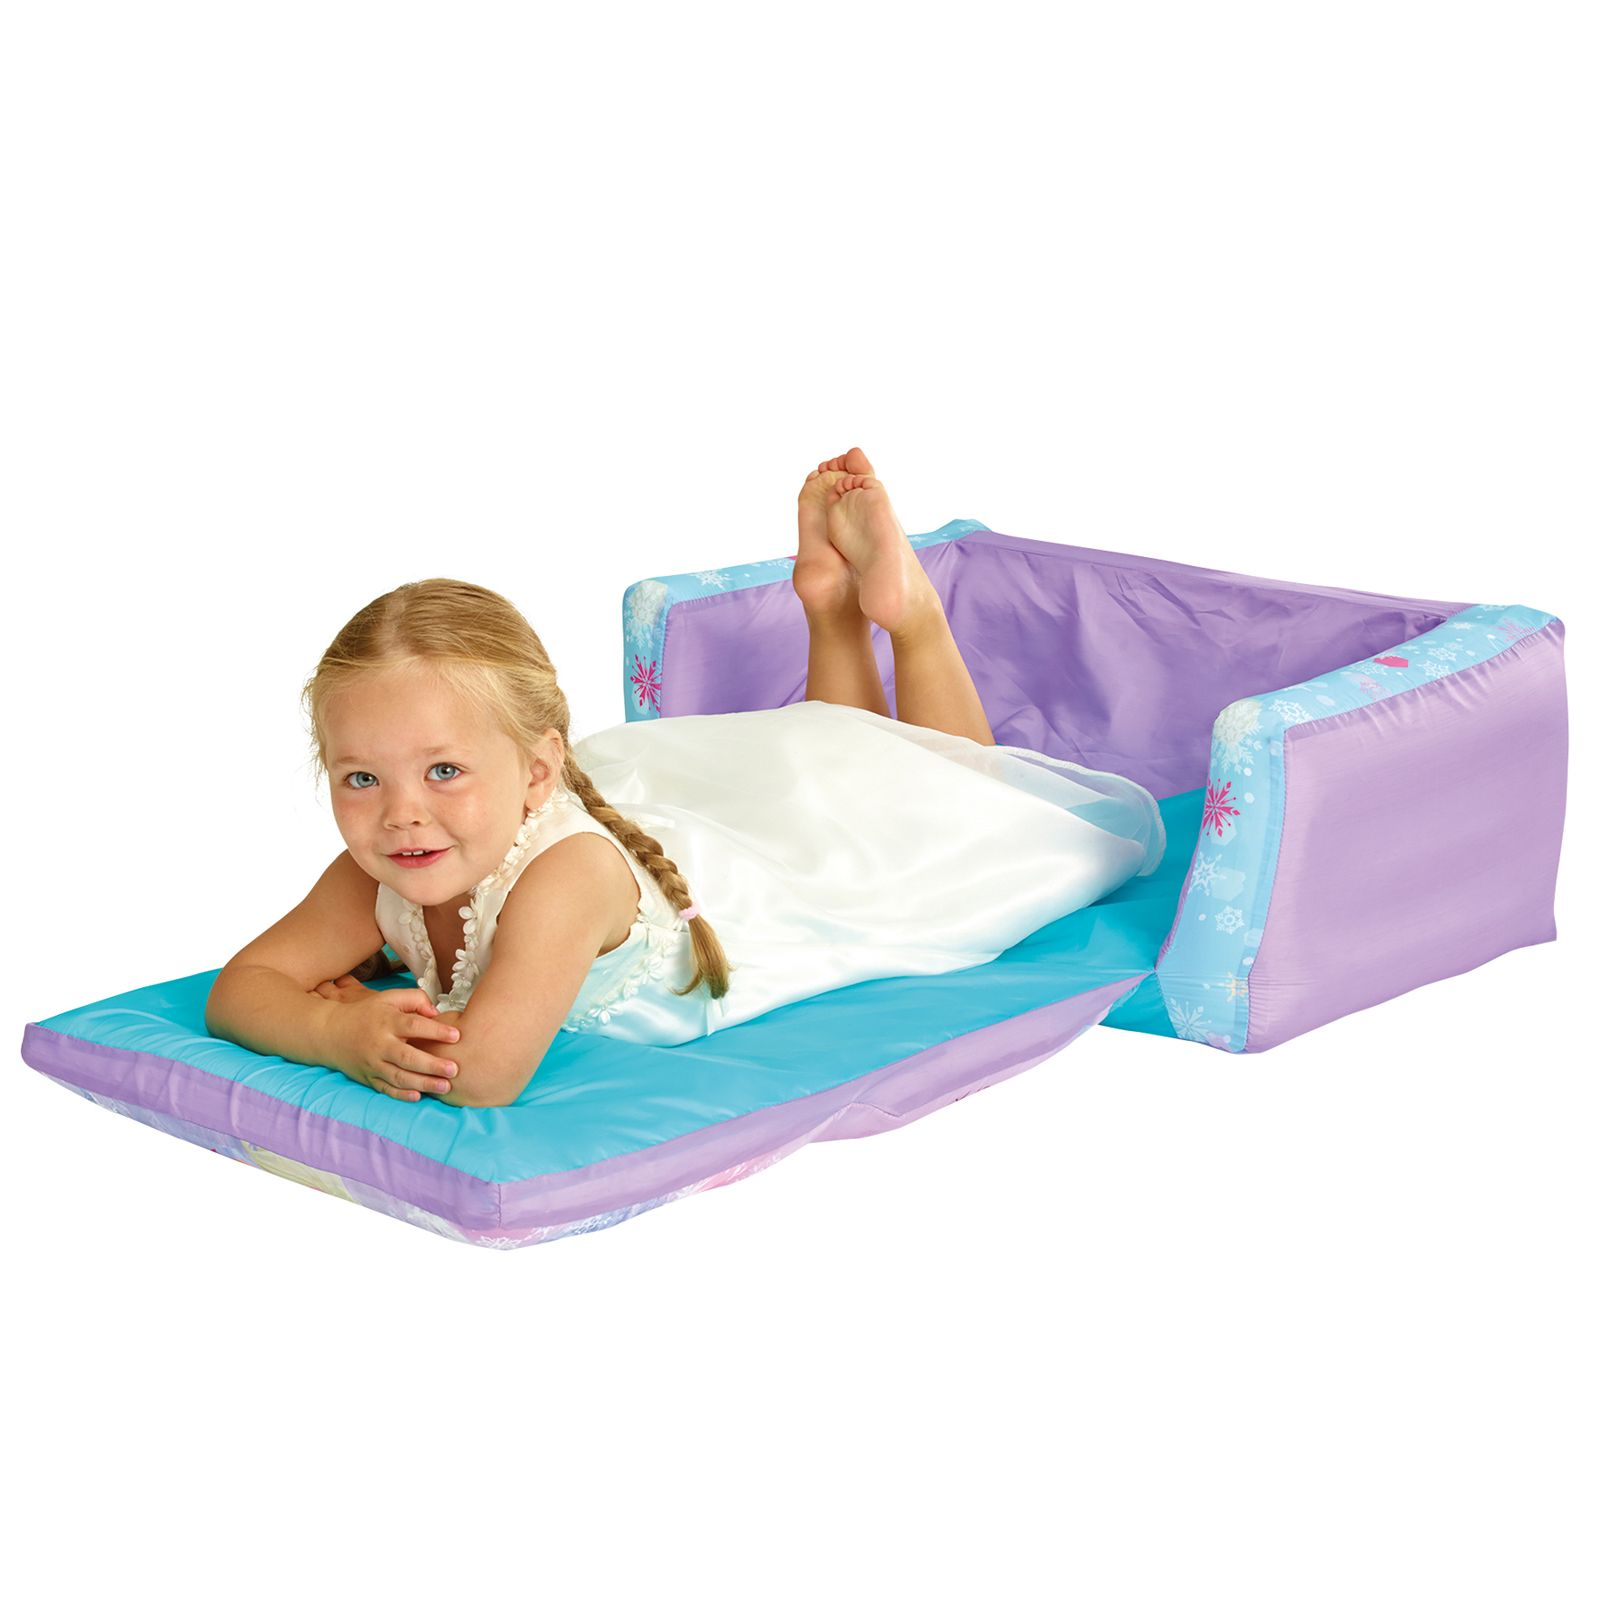 31 Incroyables Detournements Dobjets Ikea Que Tou in addition 16 Creative Mind Blowing Folding Beds together with Newborn To Toddler Portable Rocker in addition Mini Couch For Kids as well Barbie Colors Bedroom Girls. on toddler fold out chair